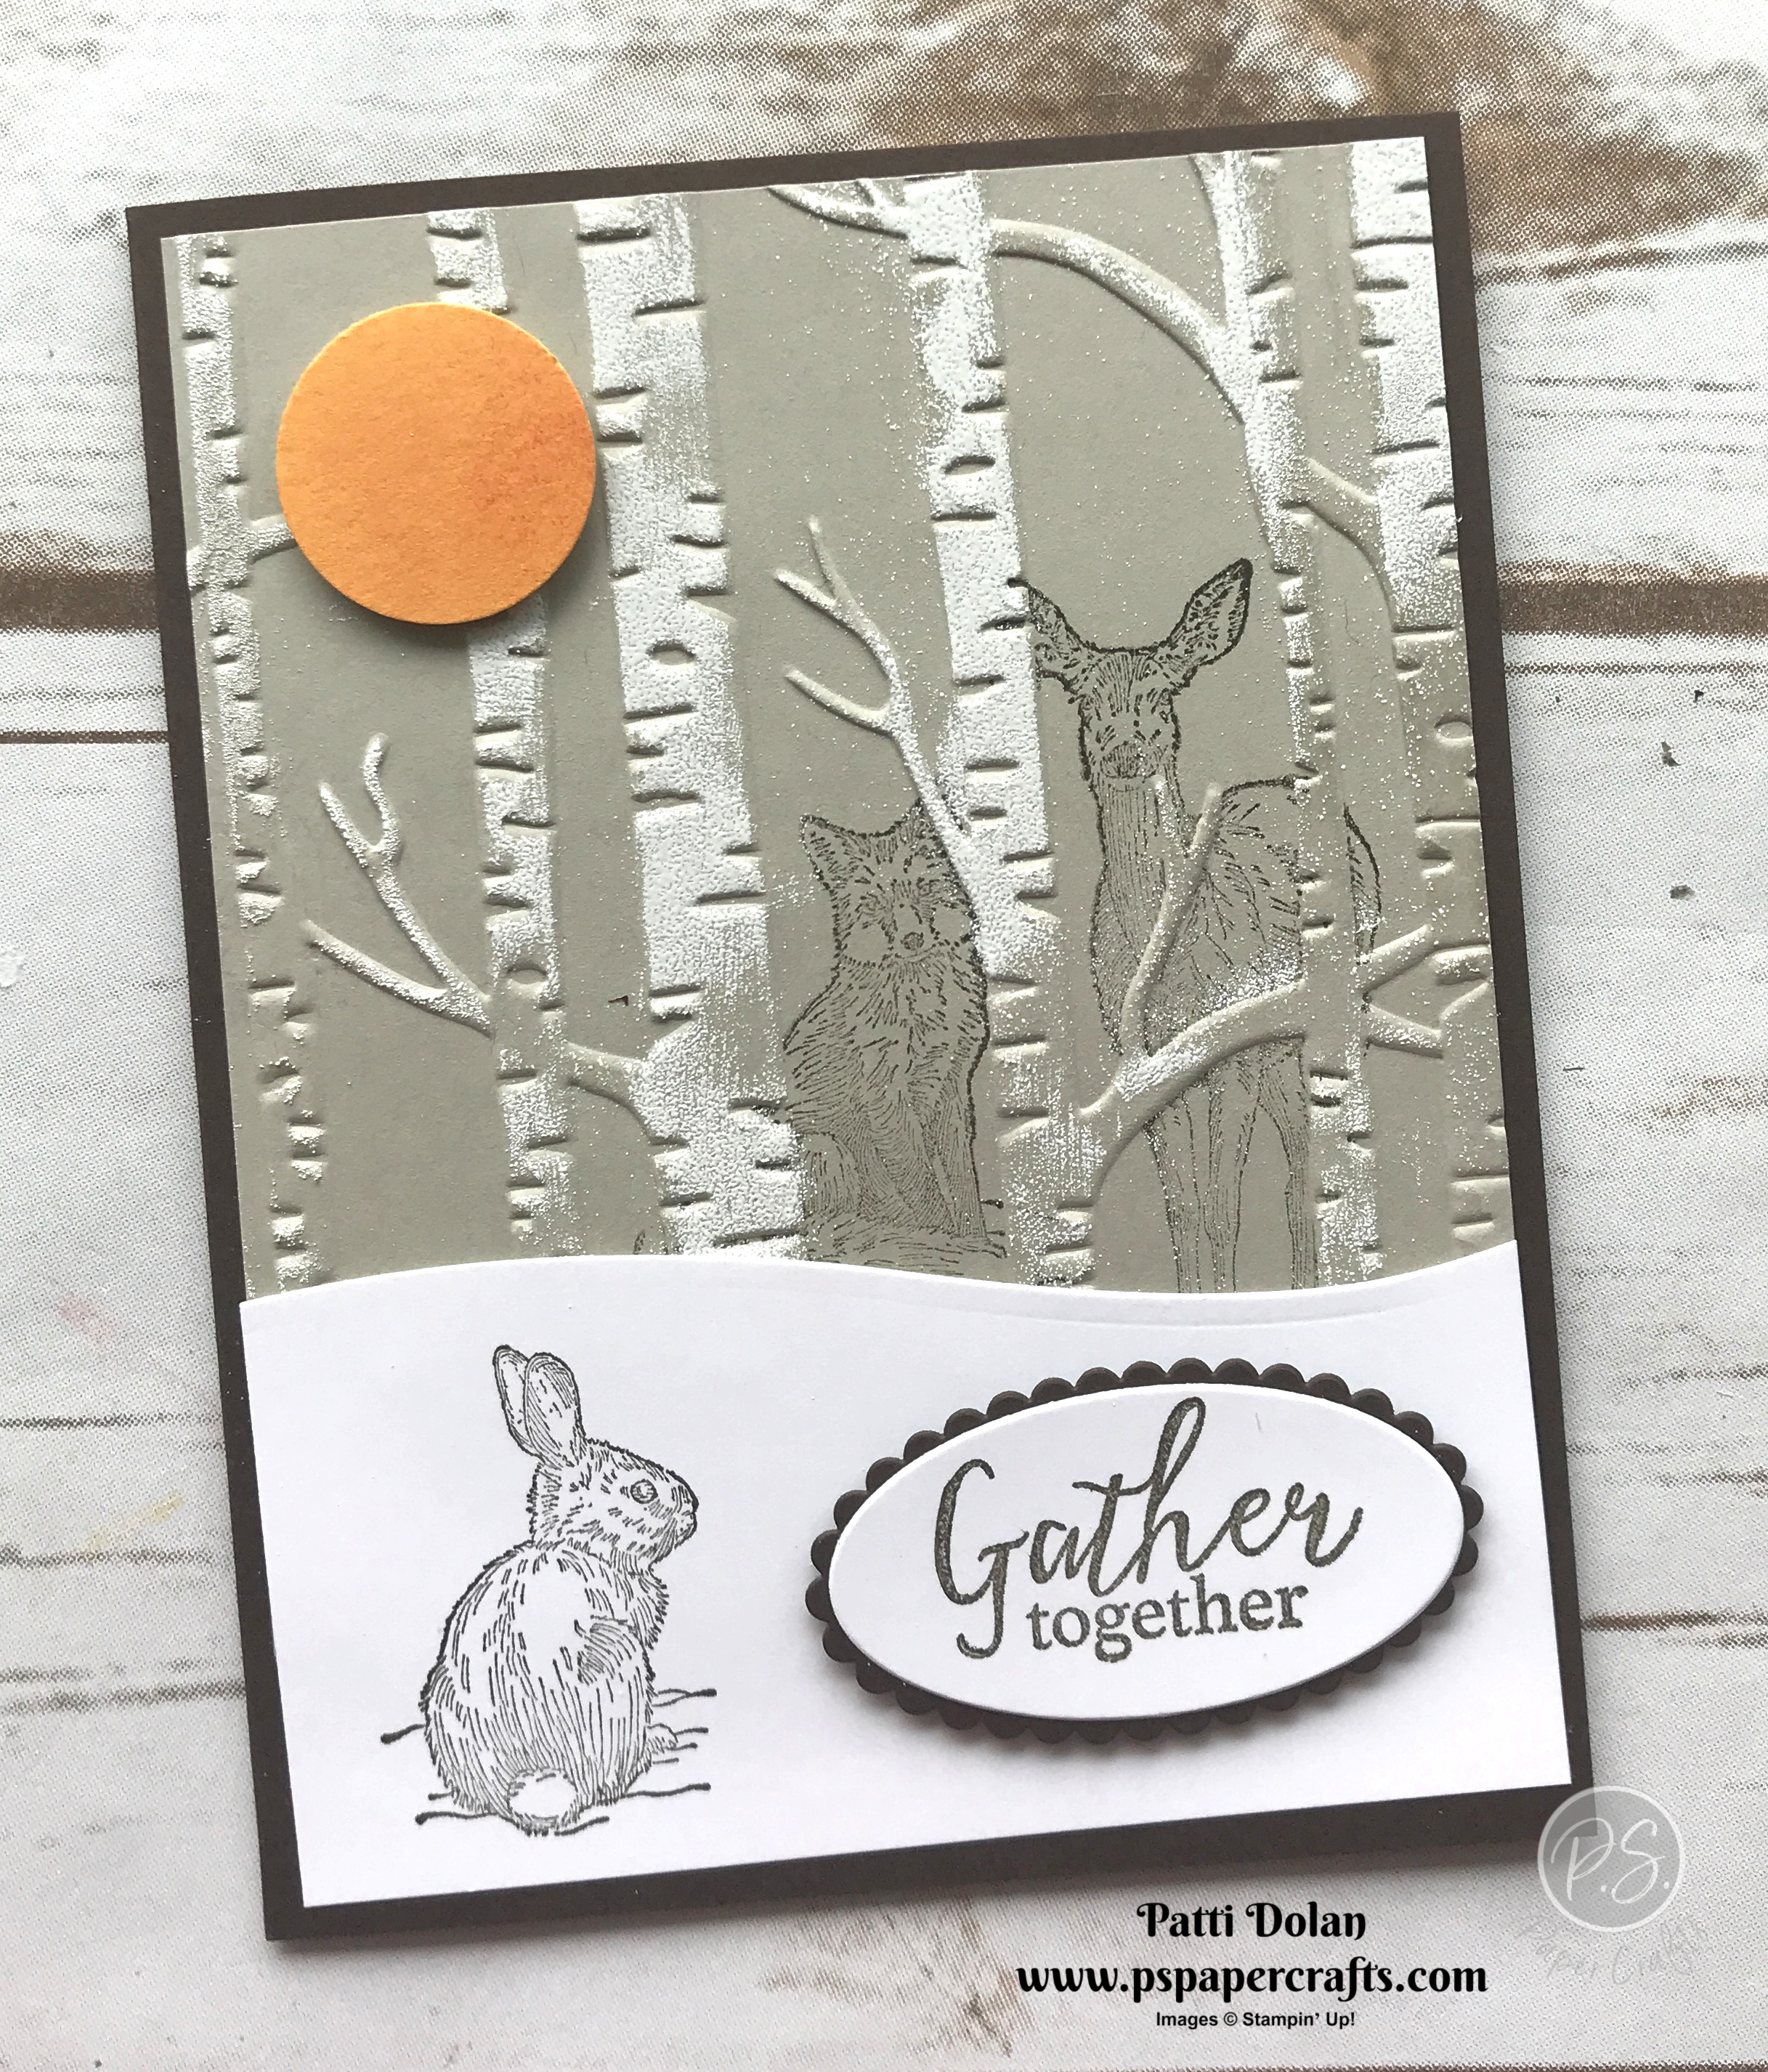 Nature's Beauty - Stamping On Embossing Folder card.jpg